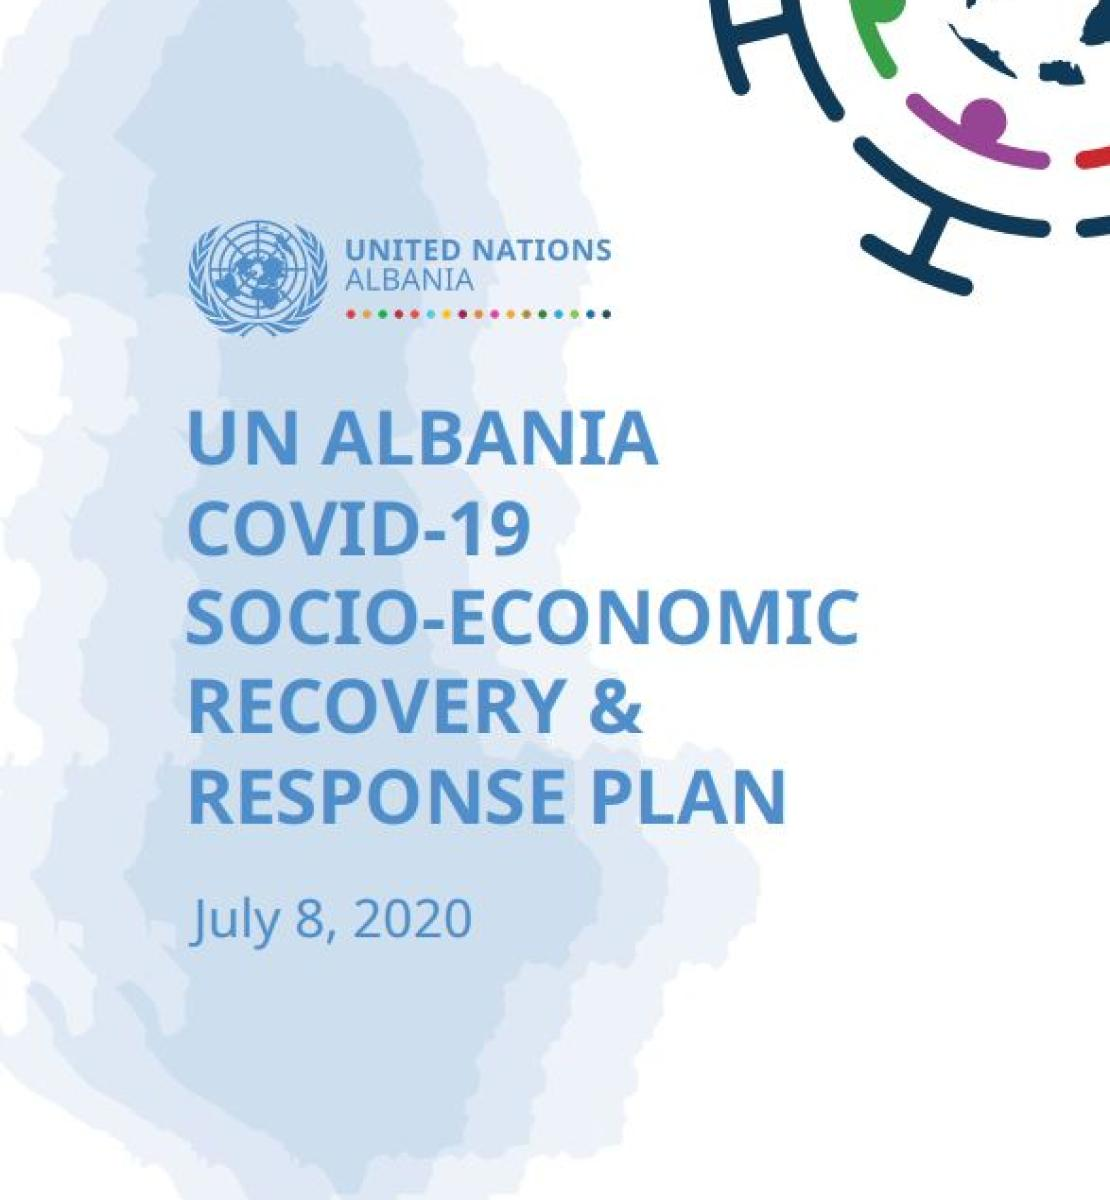 """Cover shows the title """"UN ALBANIA COVID-19 SOCIO-ECONOMIC RECOVERY & RESPONSE PLAN"""" over white and blue background"""